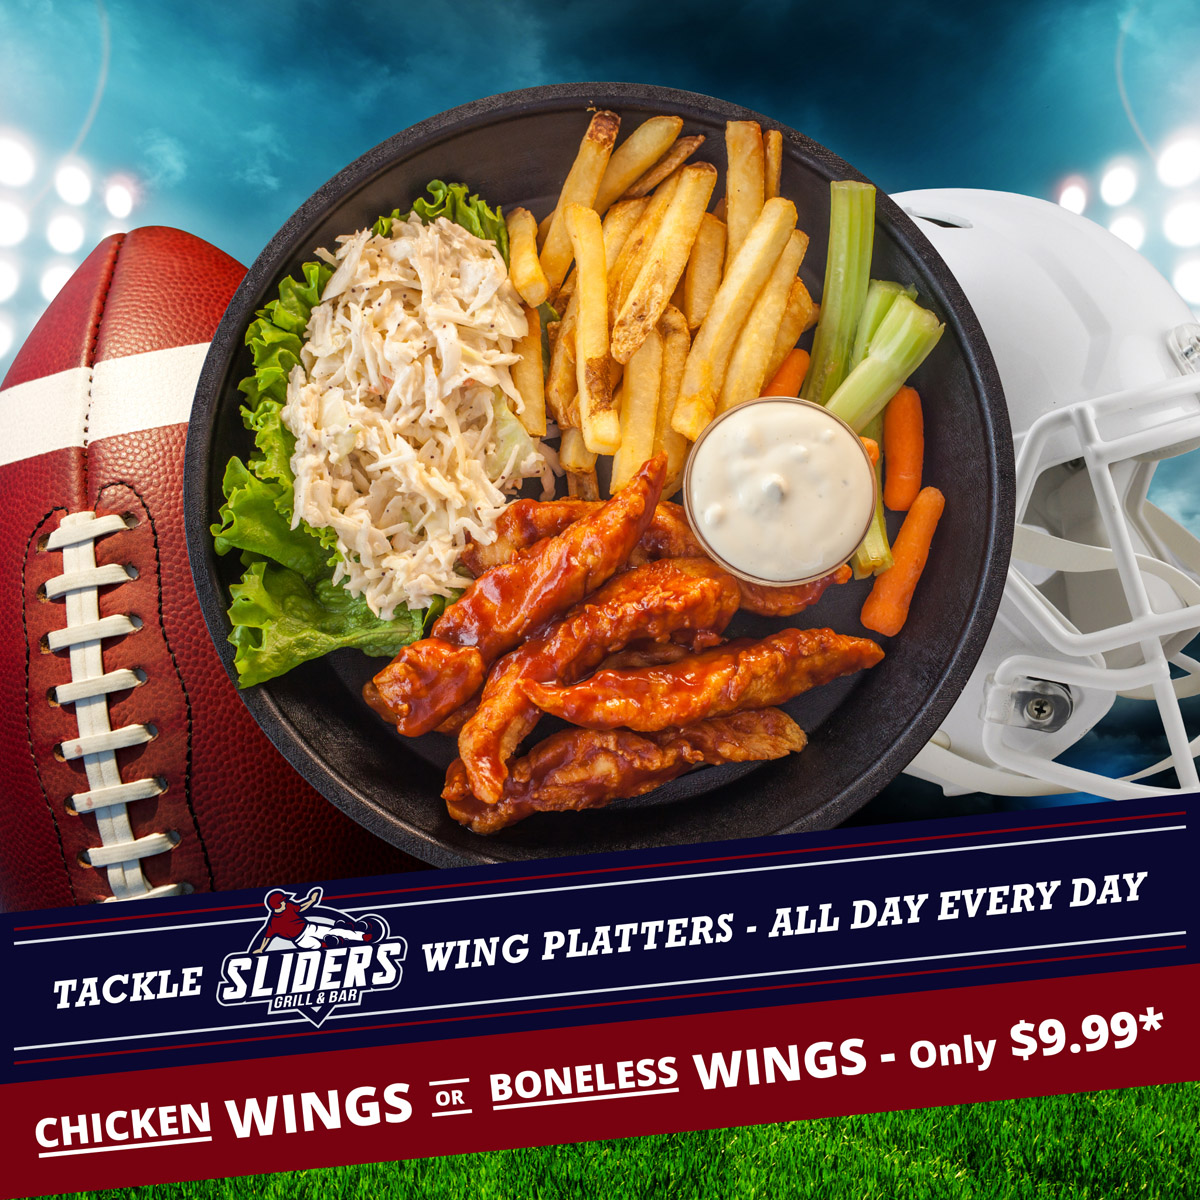 Tackle Wing Platters